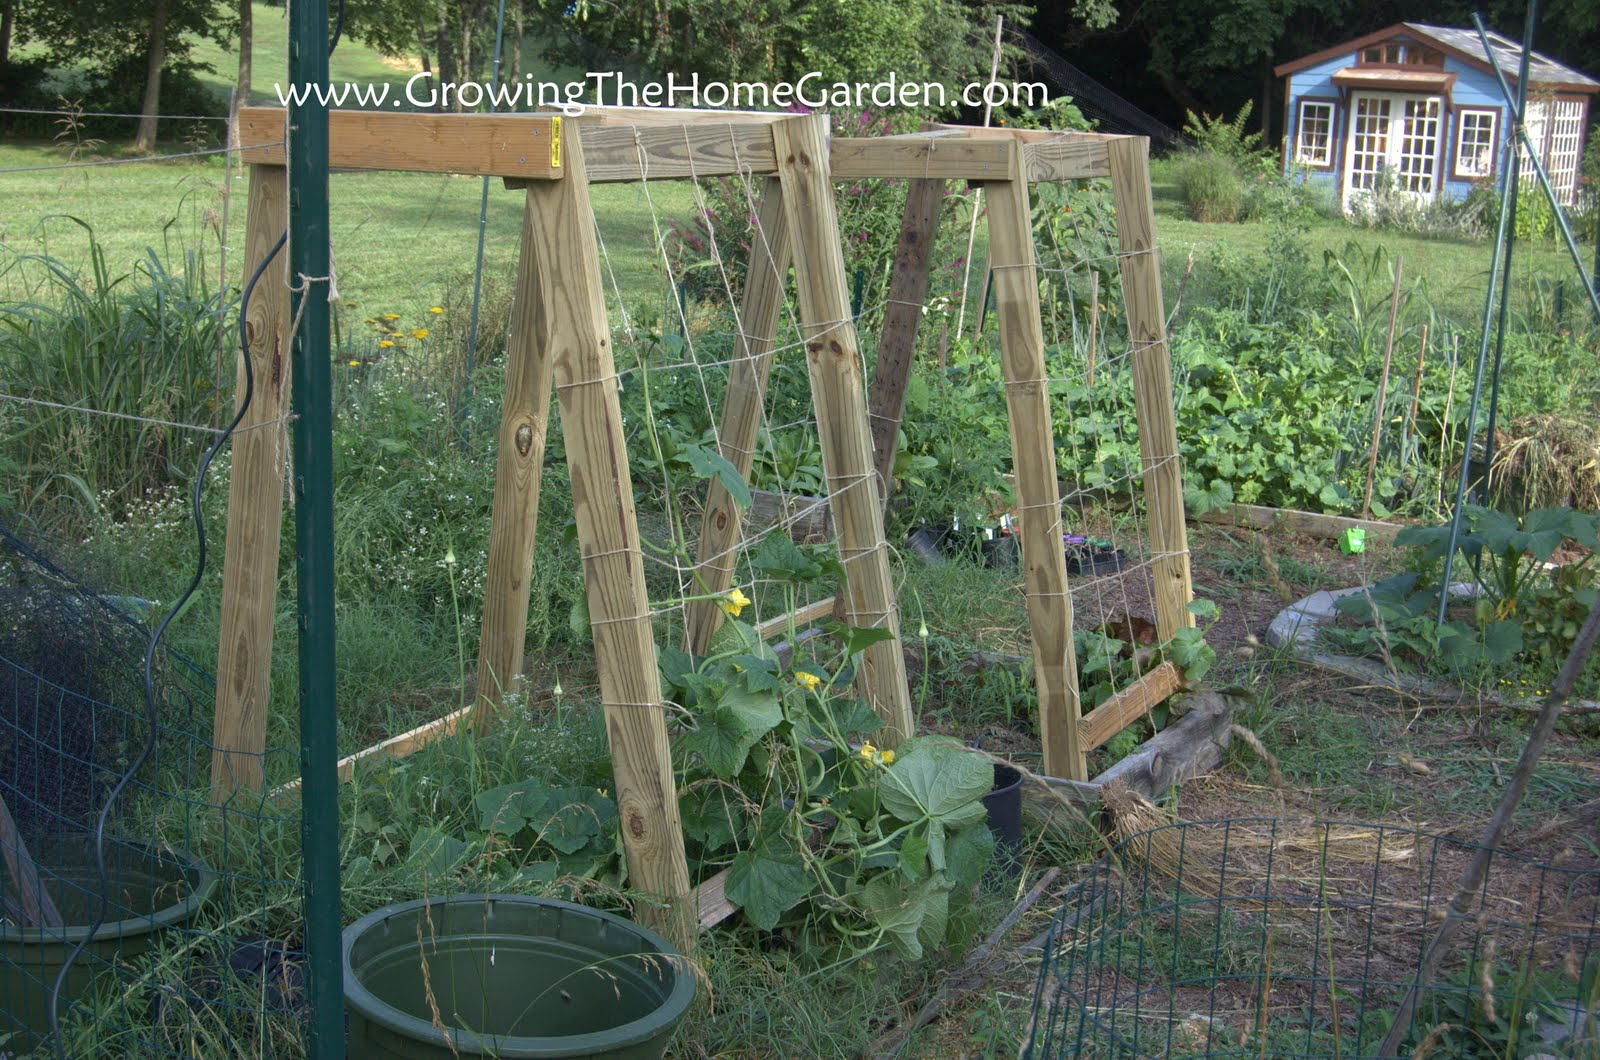 Homemade cucumber or melon trellises growing the home garden for Garden trellis ideas